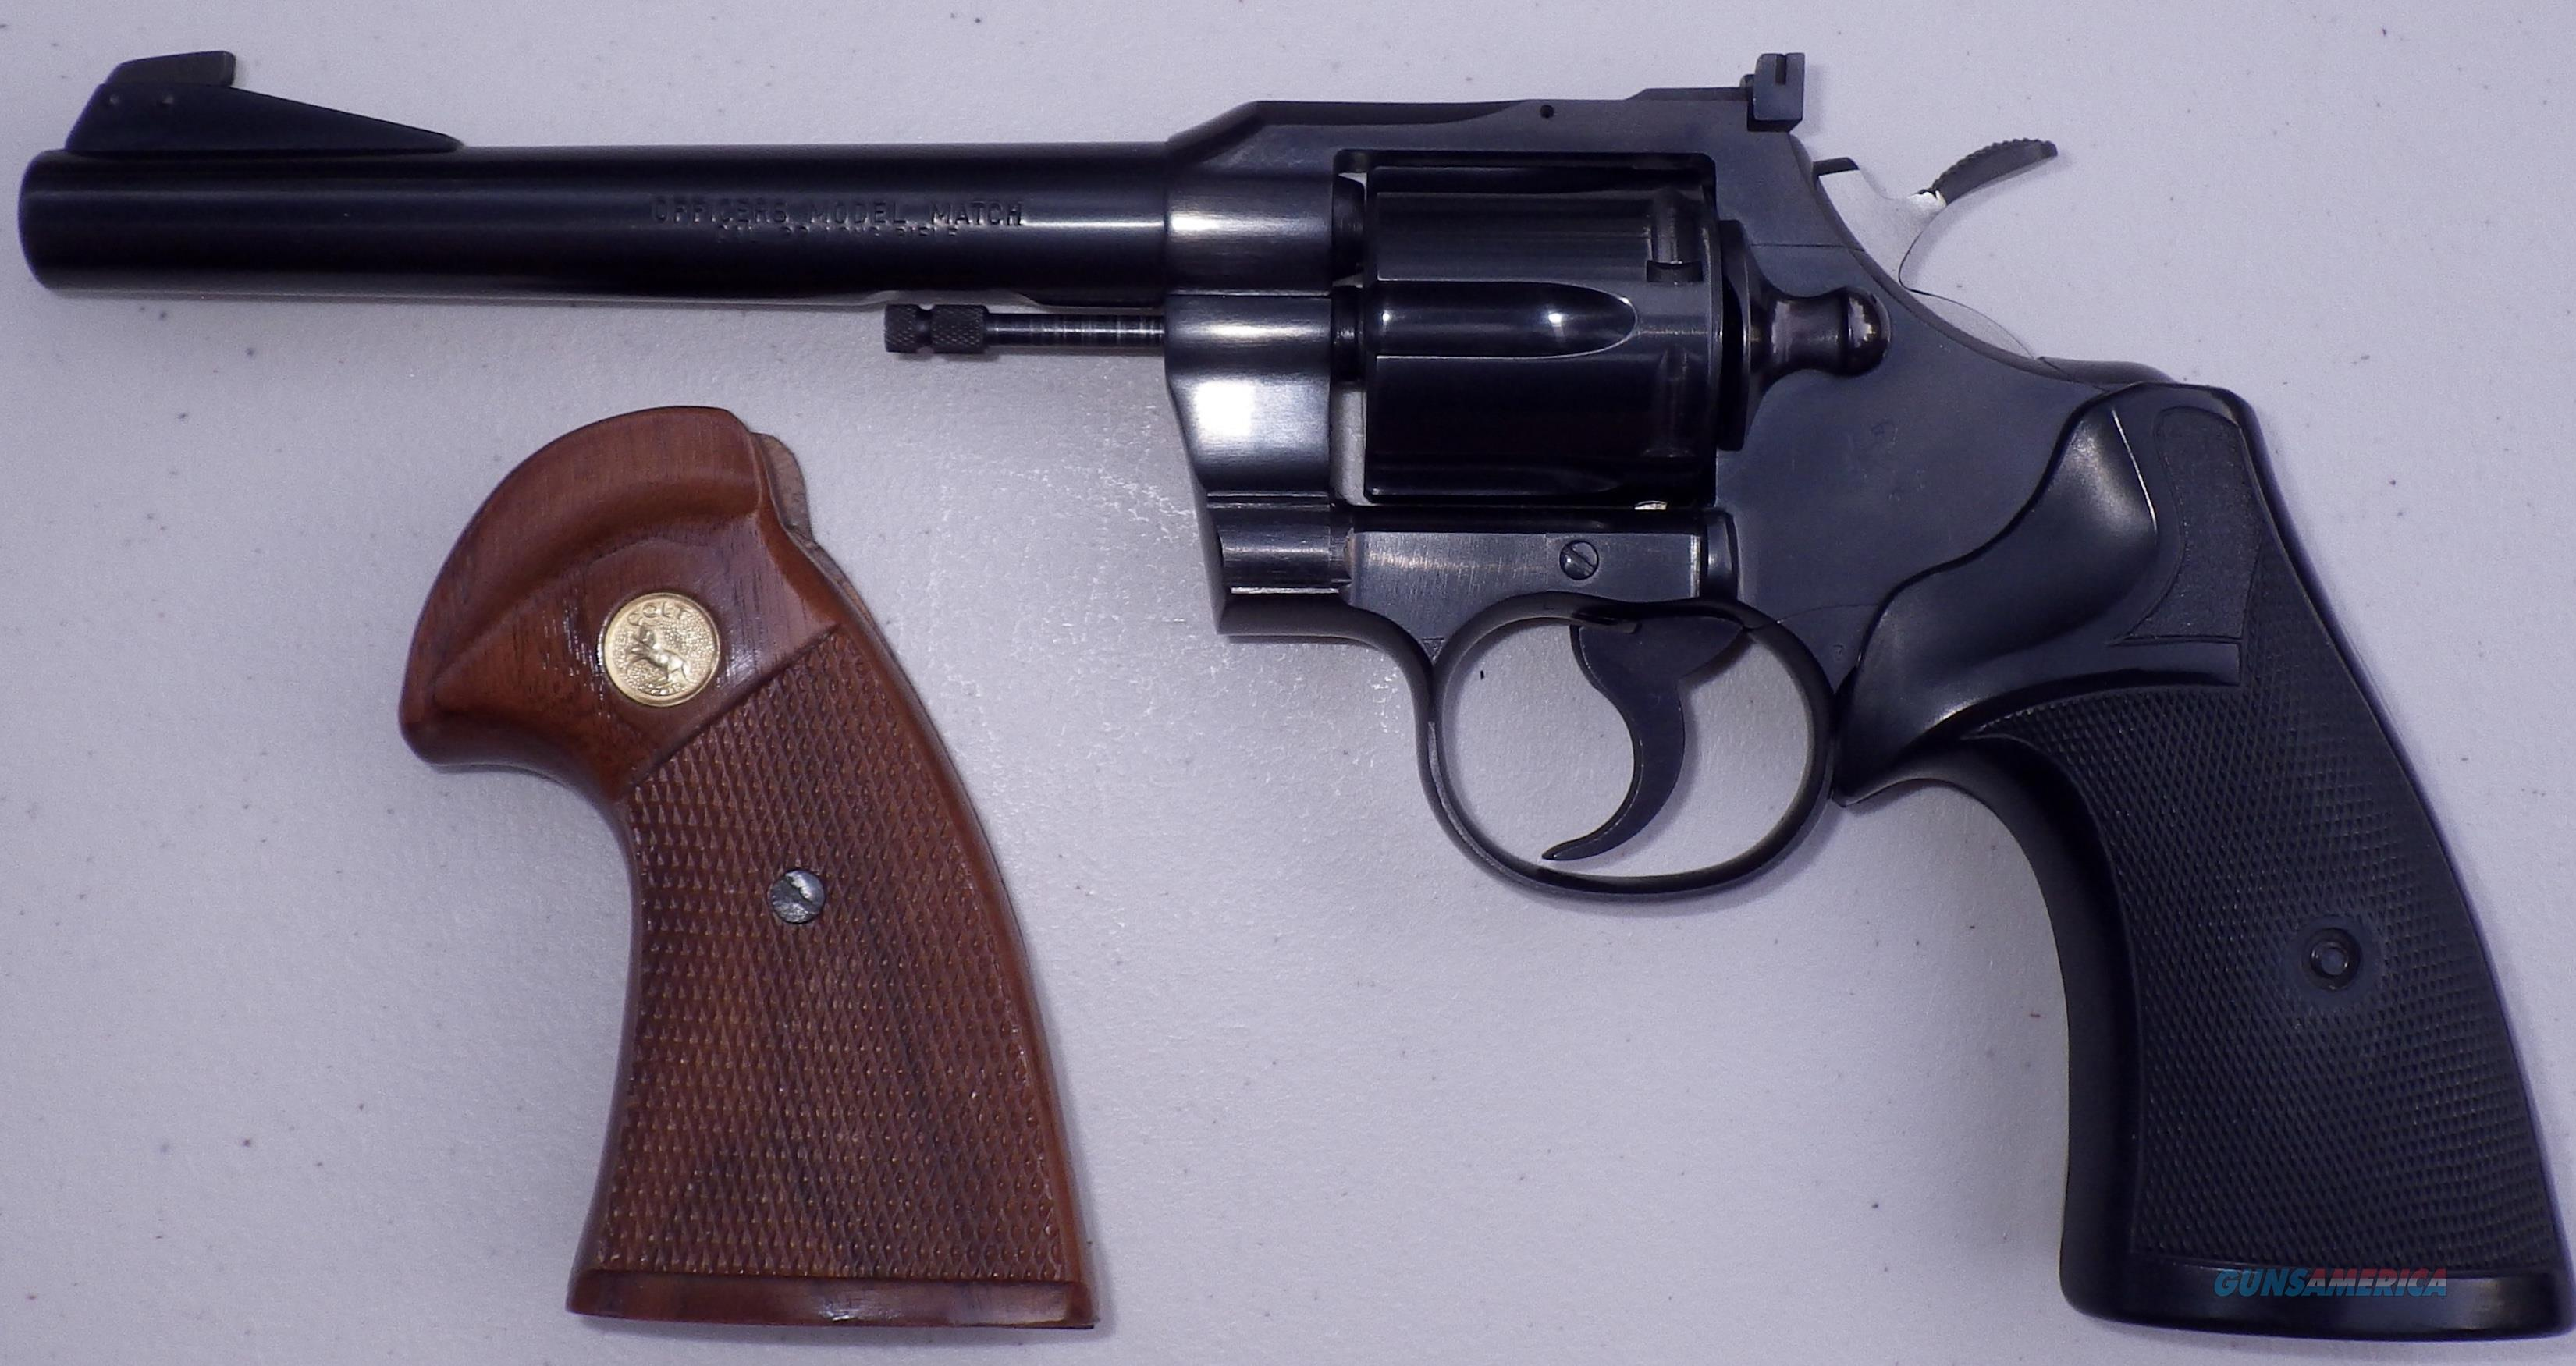 colt officers model match 22 serial numbers